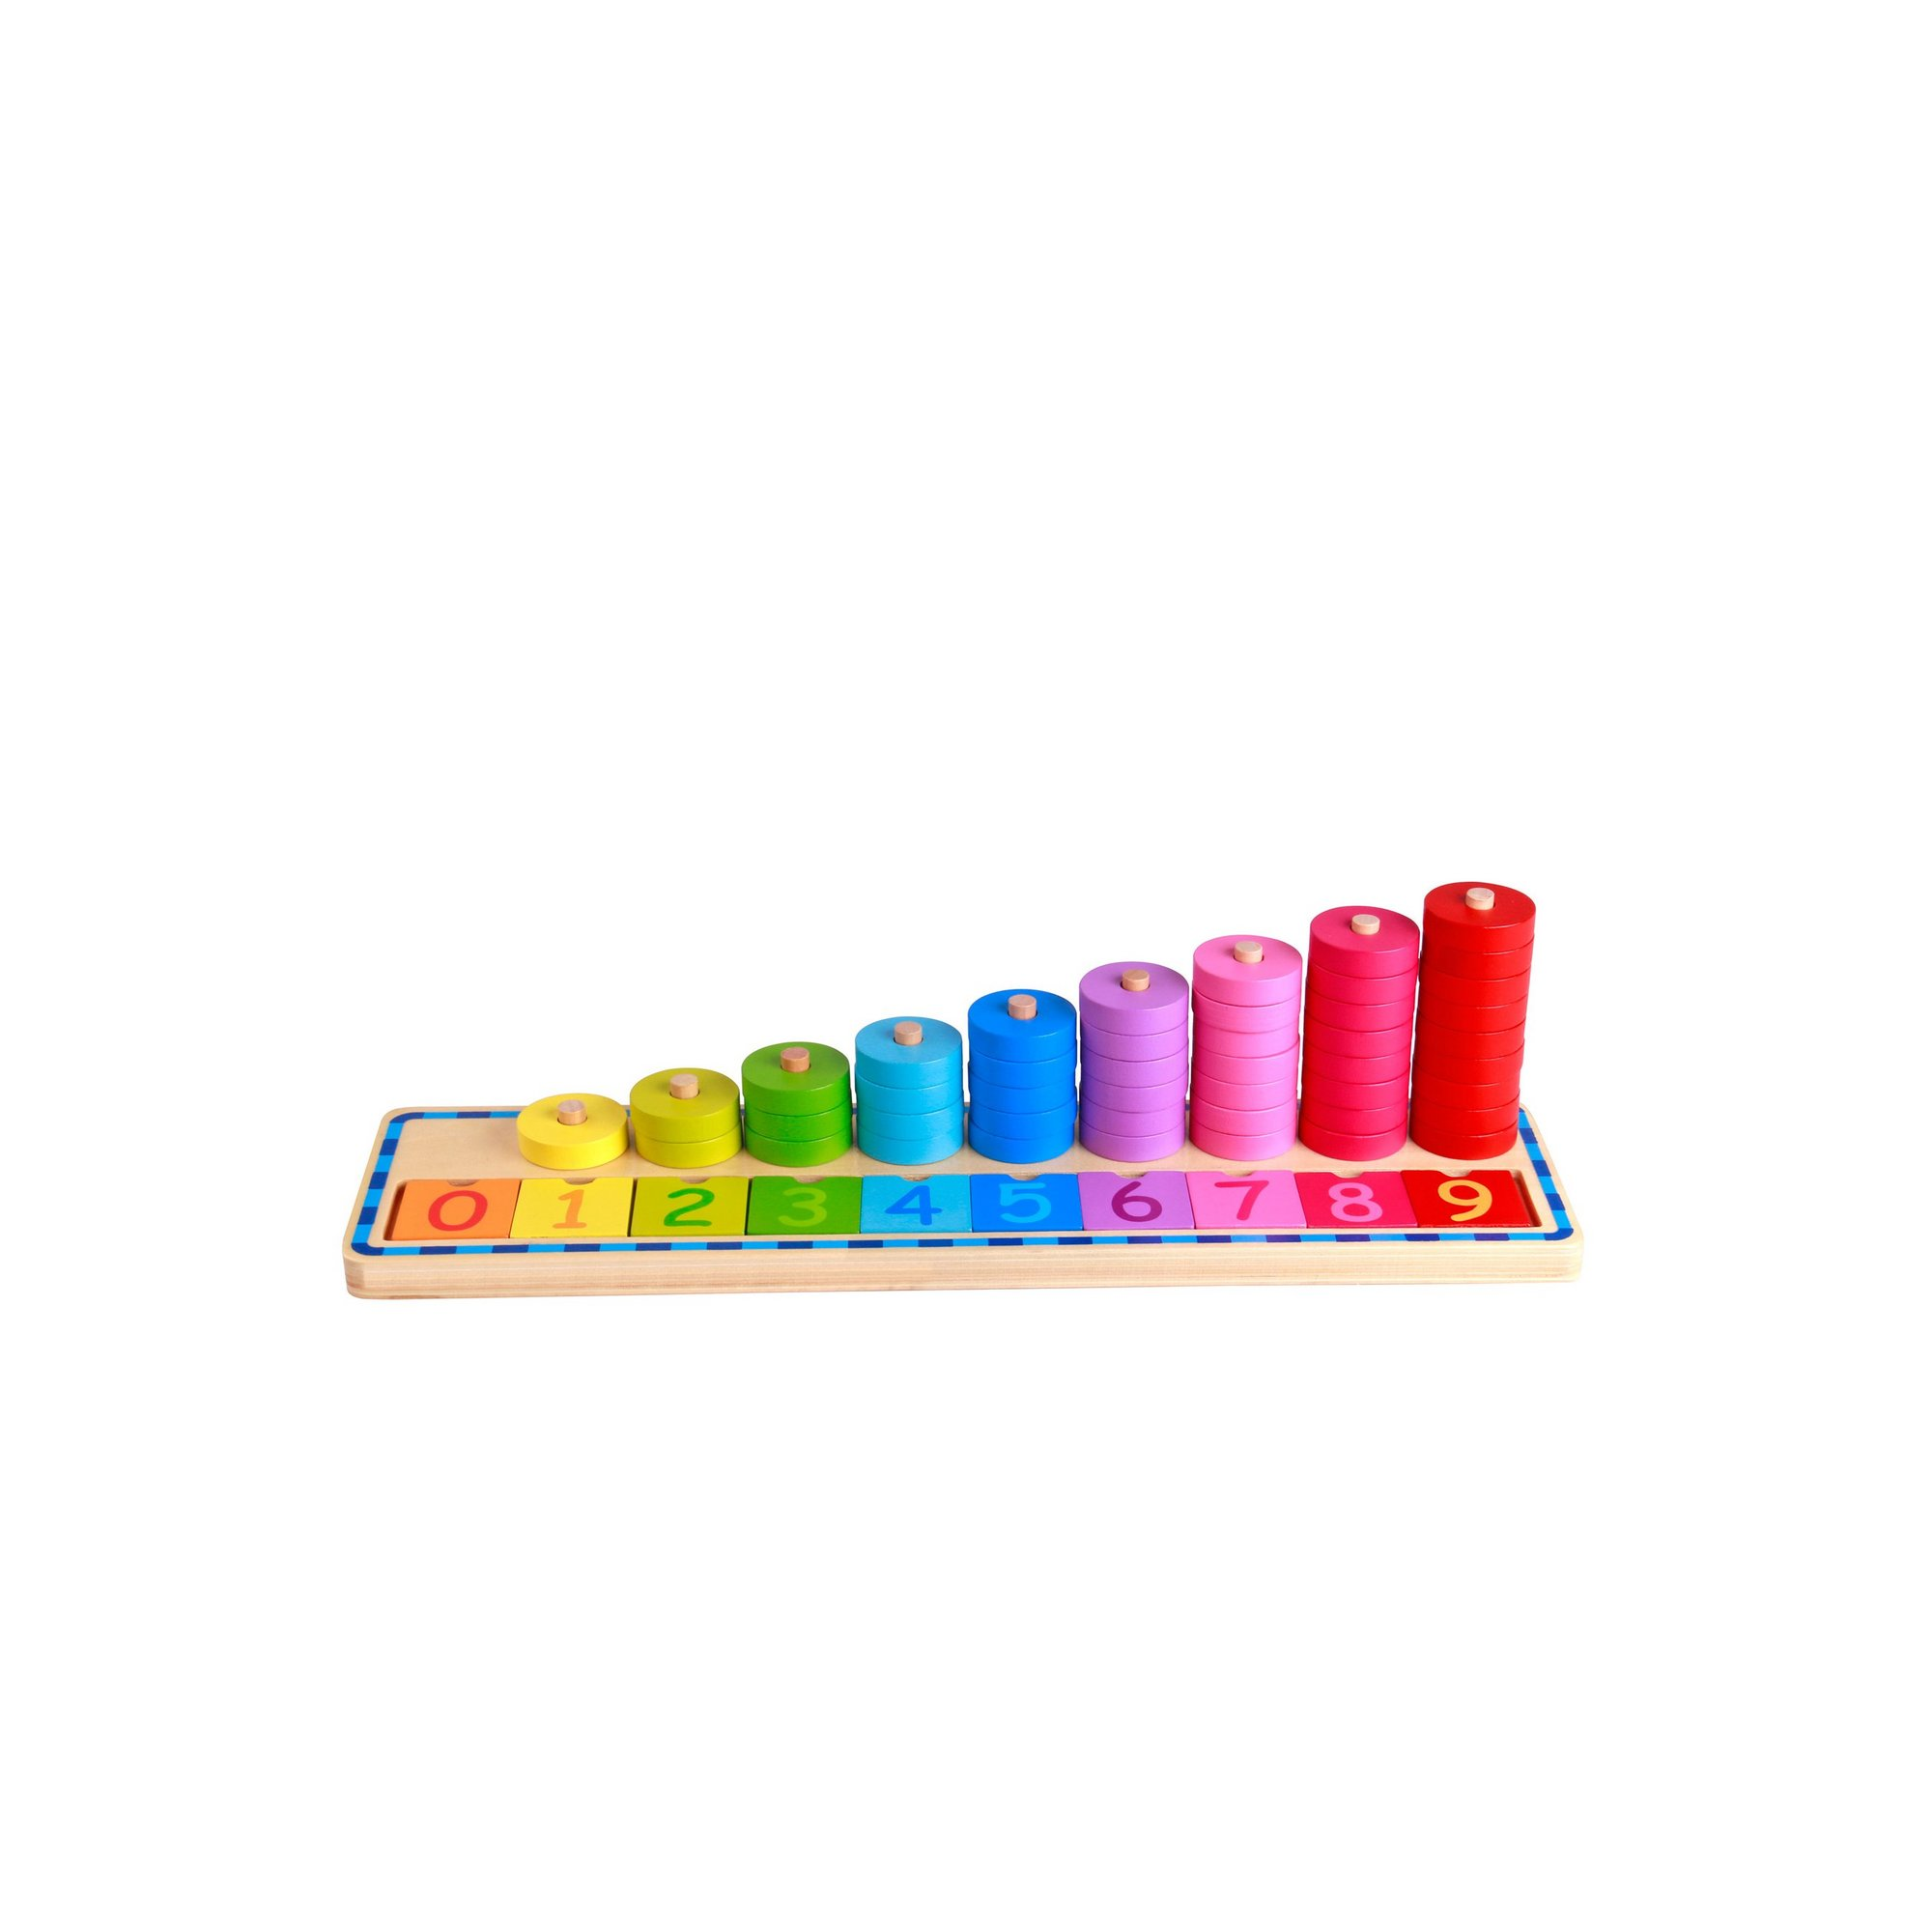 Image of Wooden Counting Stacker